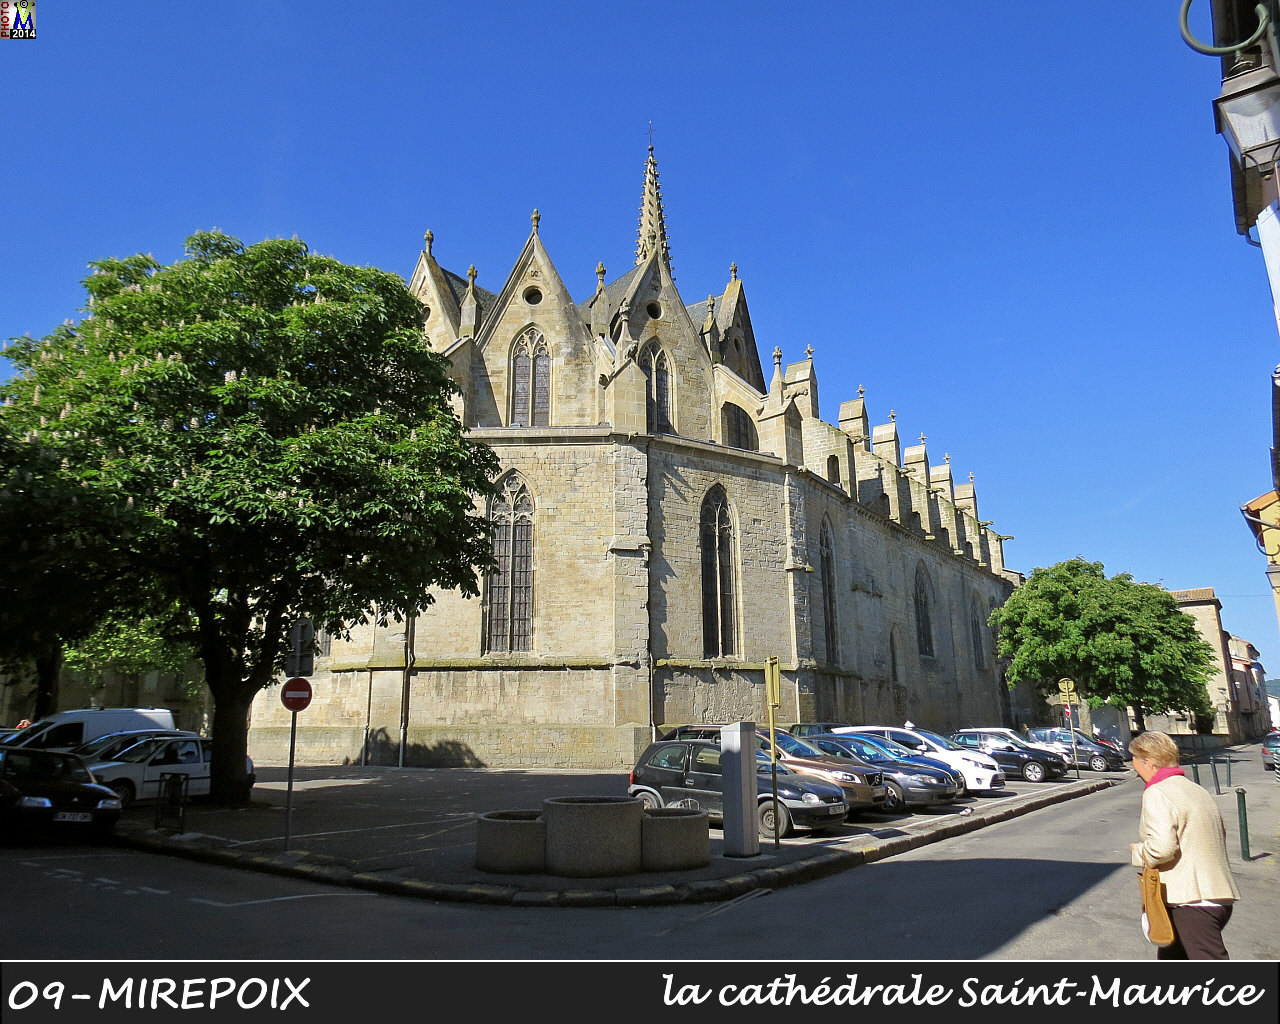 09MIREPOIX_cathedrale_102.jpg